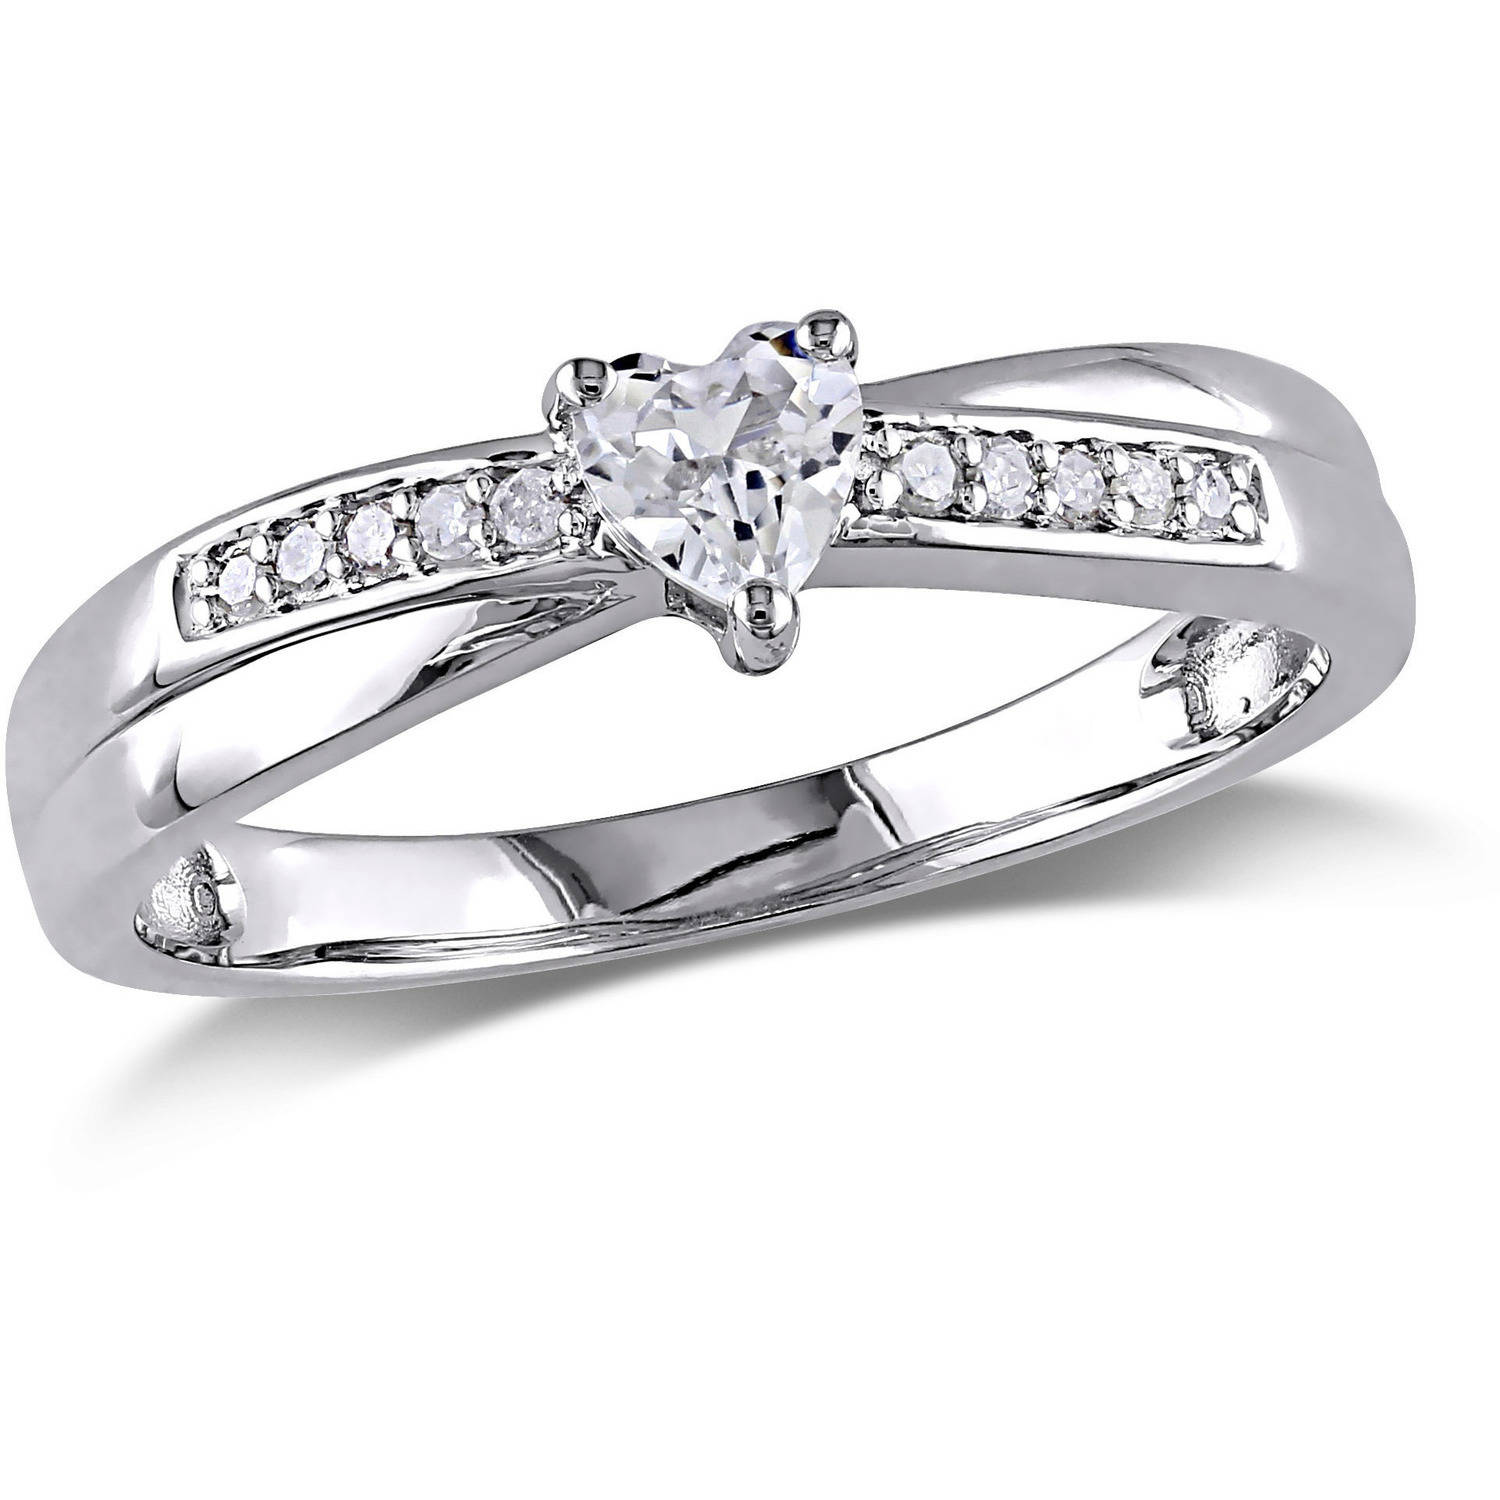 Miabella 1/4 Carat T.G.W. Created White Sapphire and Diamond-Accent Sterling Silver Heart Engagement Ring